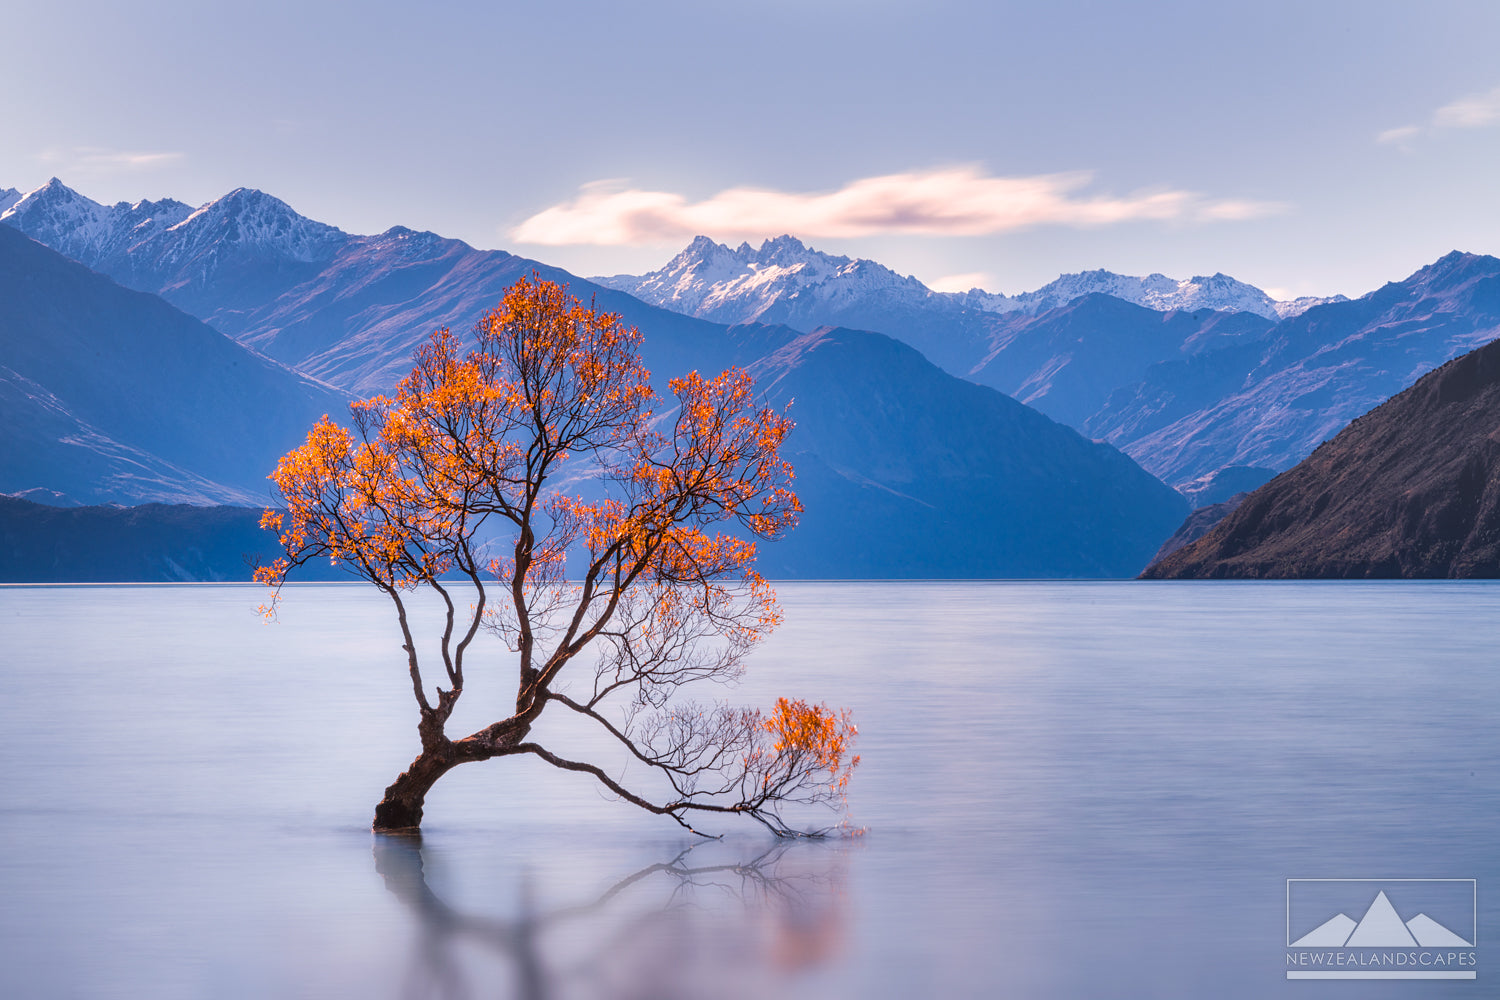 That Wanaka Tree, New Zealand, famous tree in lake photograph